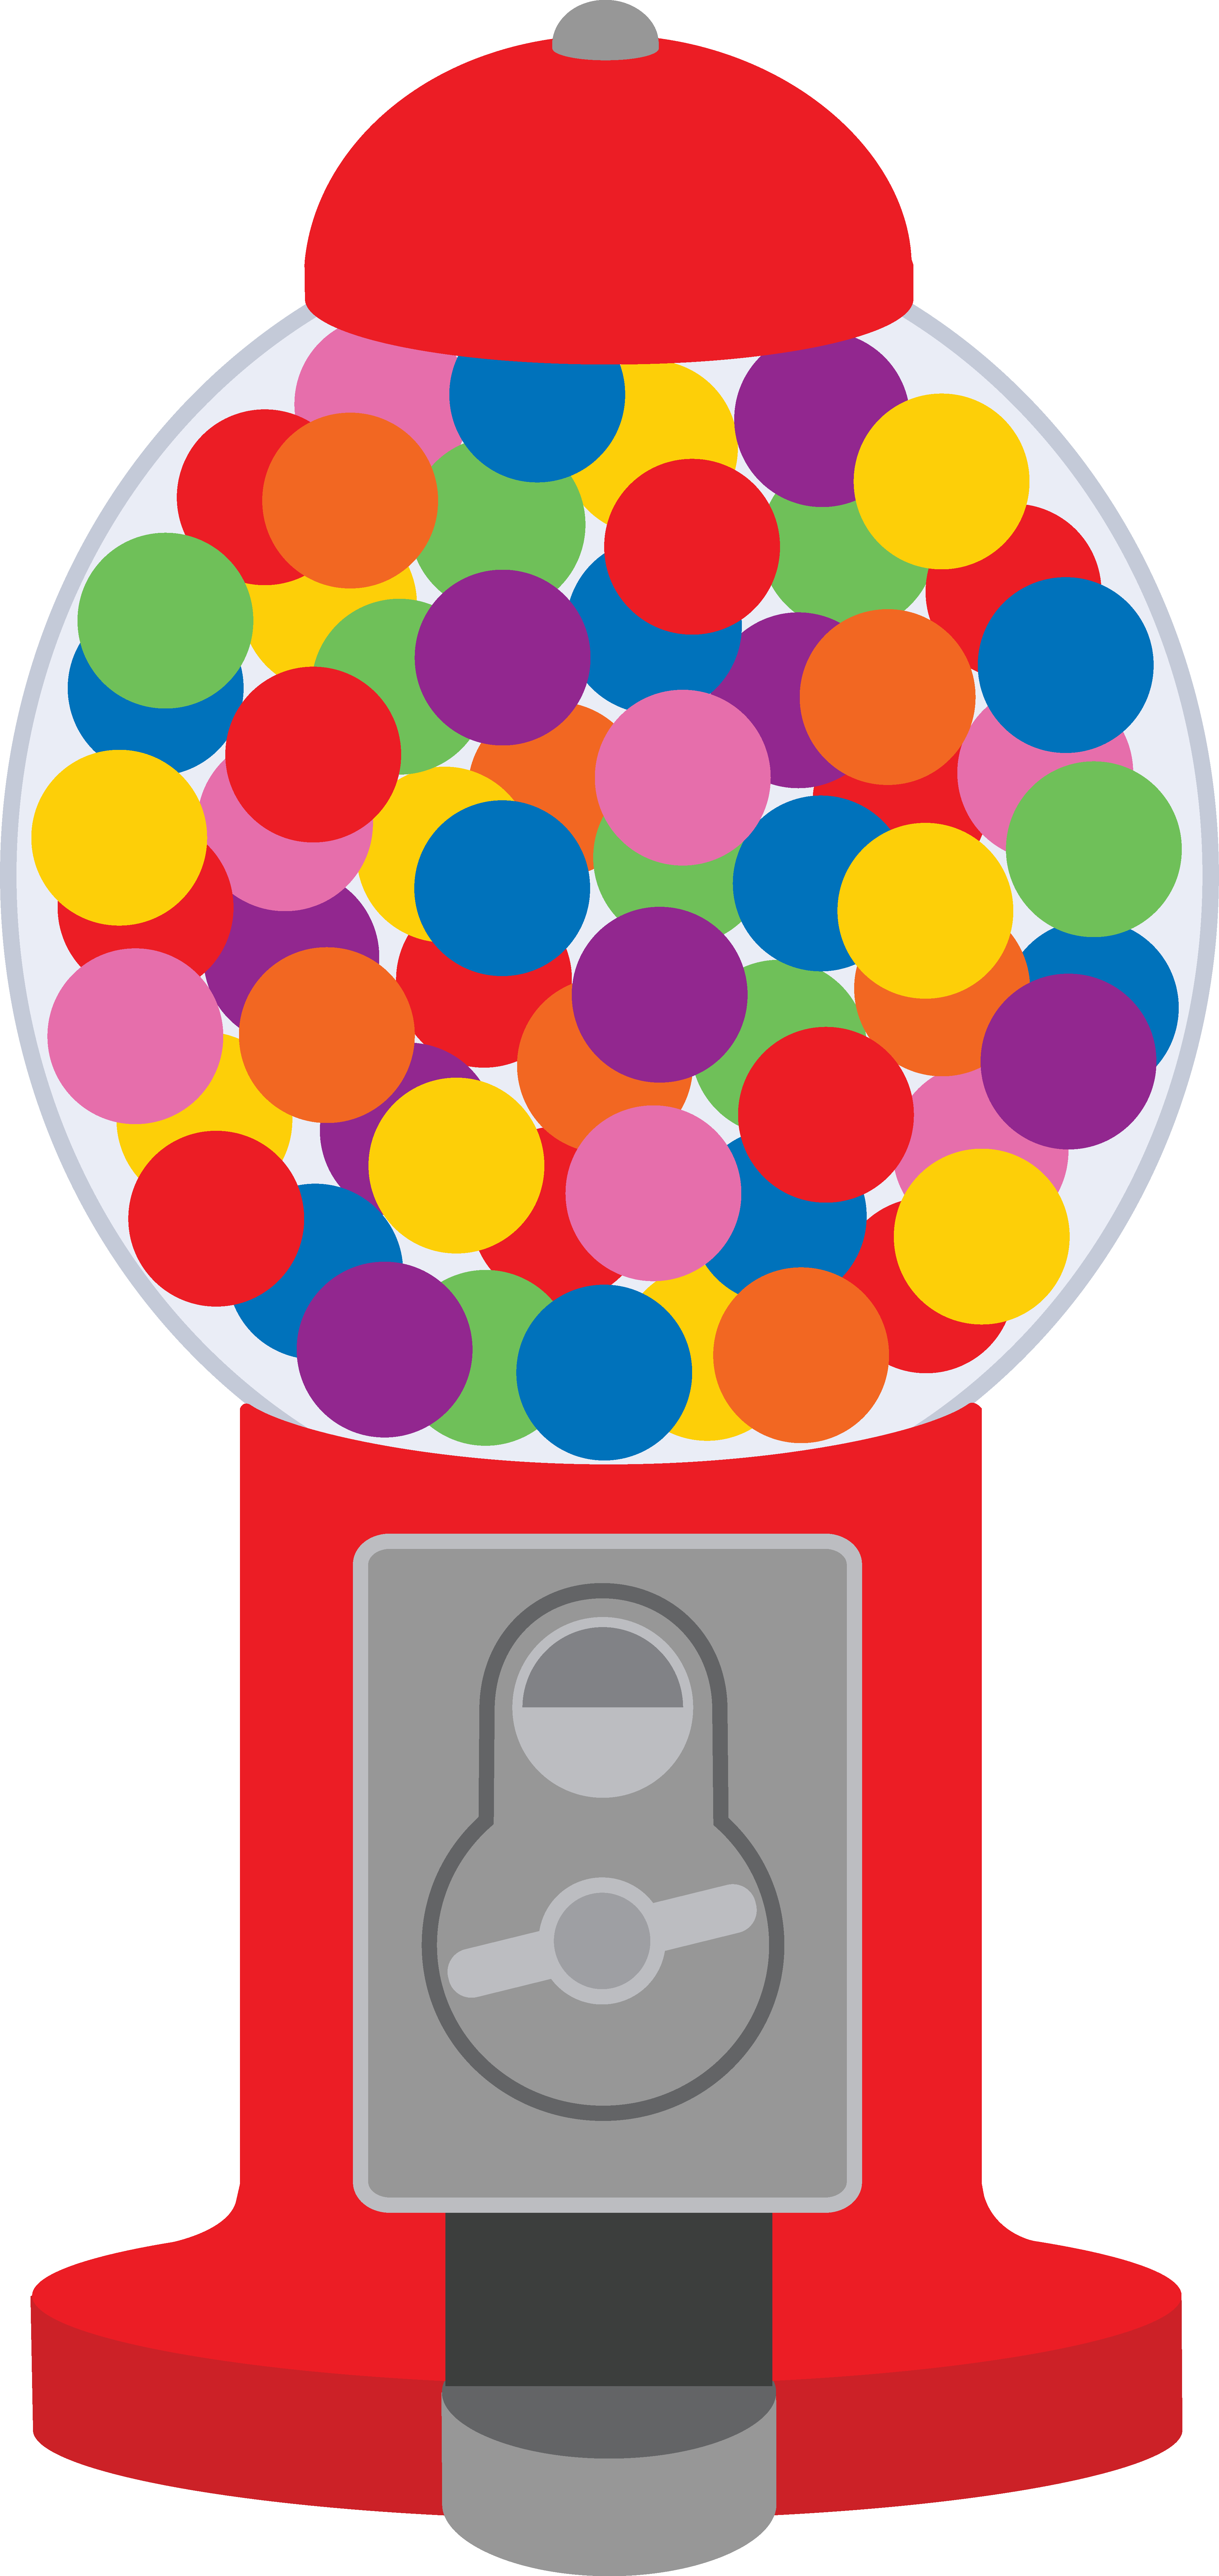 Gumball machine clipart bubble gum. Drawing cute clip art